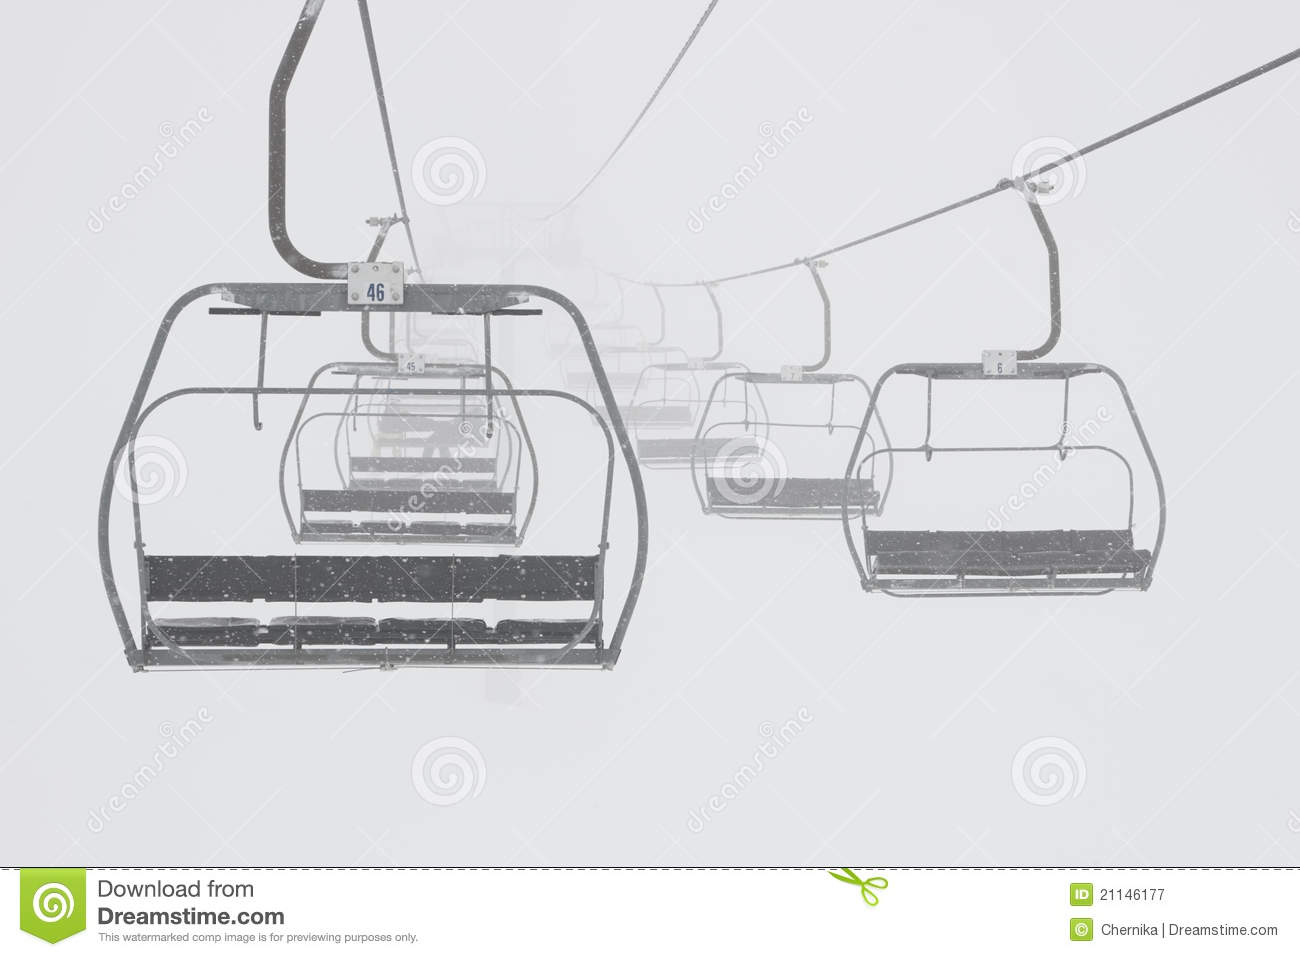 Chair Lift Design horizon a stair lift Ski Chairlift Royalty Free Stock Photography